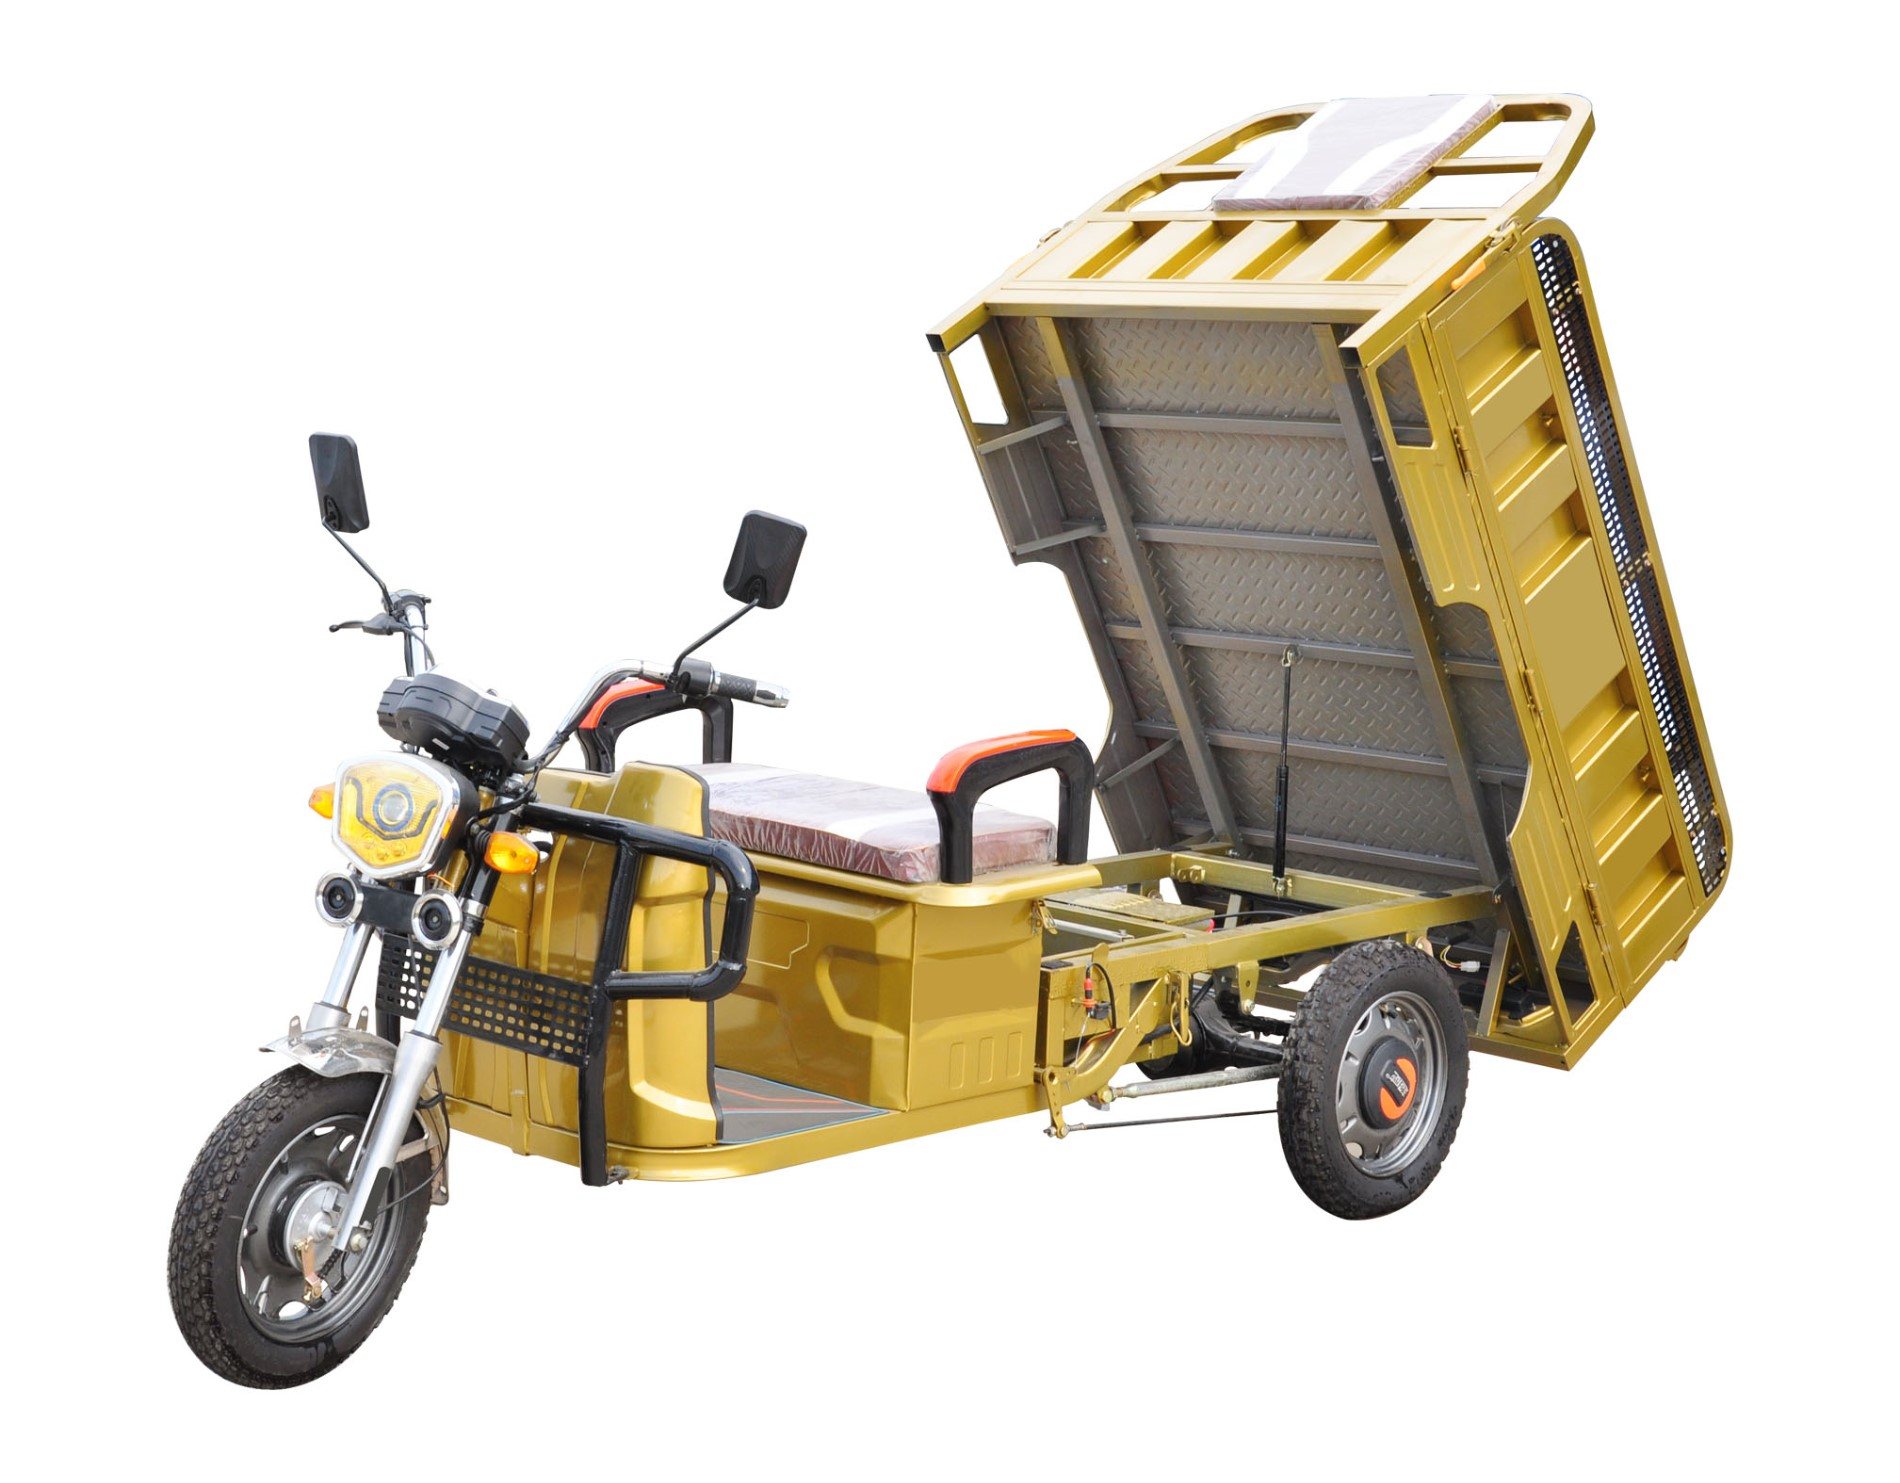 High quality Good Quality Cargo Electric Tricycle 3 Wheels Quotes,China Good Quality Cargo Electric Tricycle 3 Wheels Factory,Good Quality Cargo Electric Tricycle 3 Wheels Purchasing